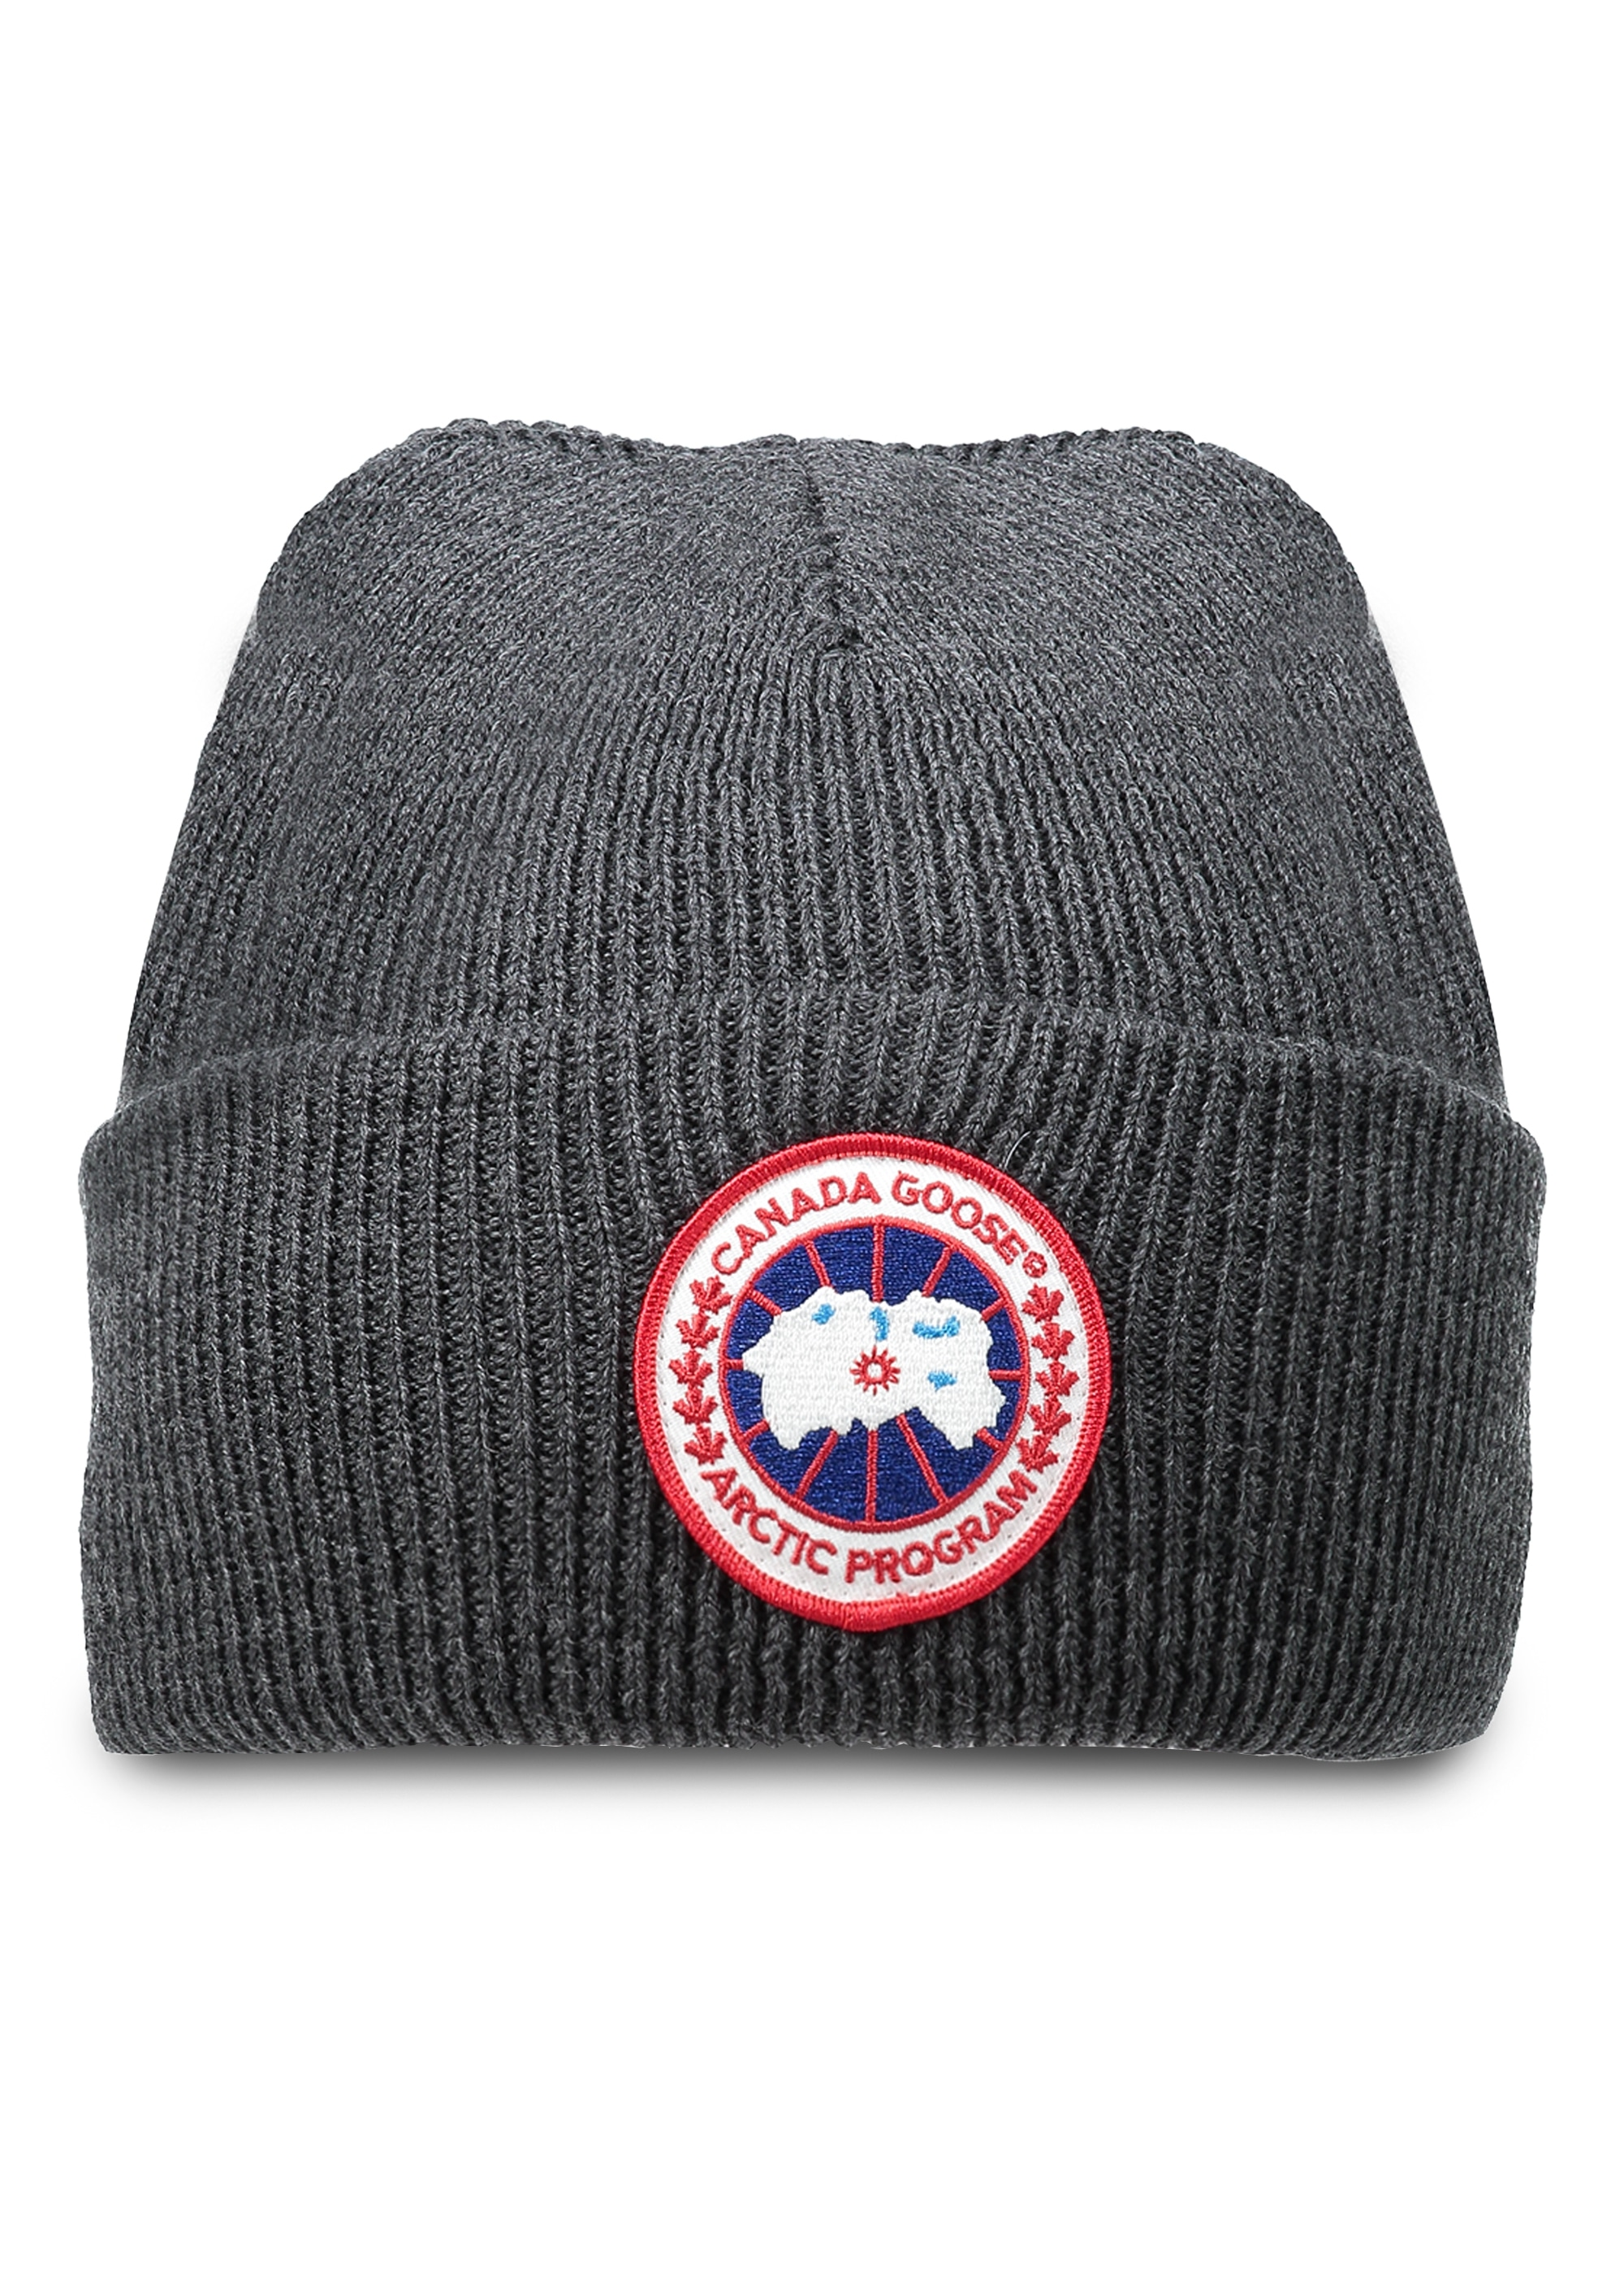 239536ba63d8d6 Canada Goose Arctic Disc Toque Hat - Iron - Headwear from Triads UK